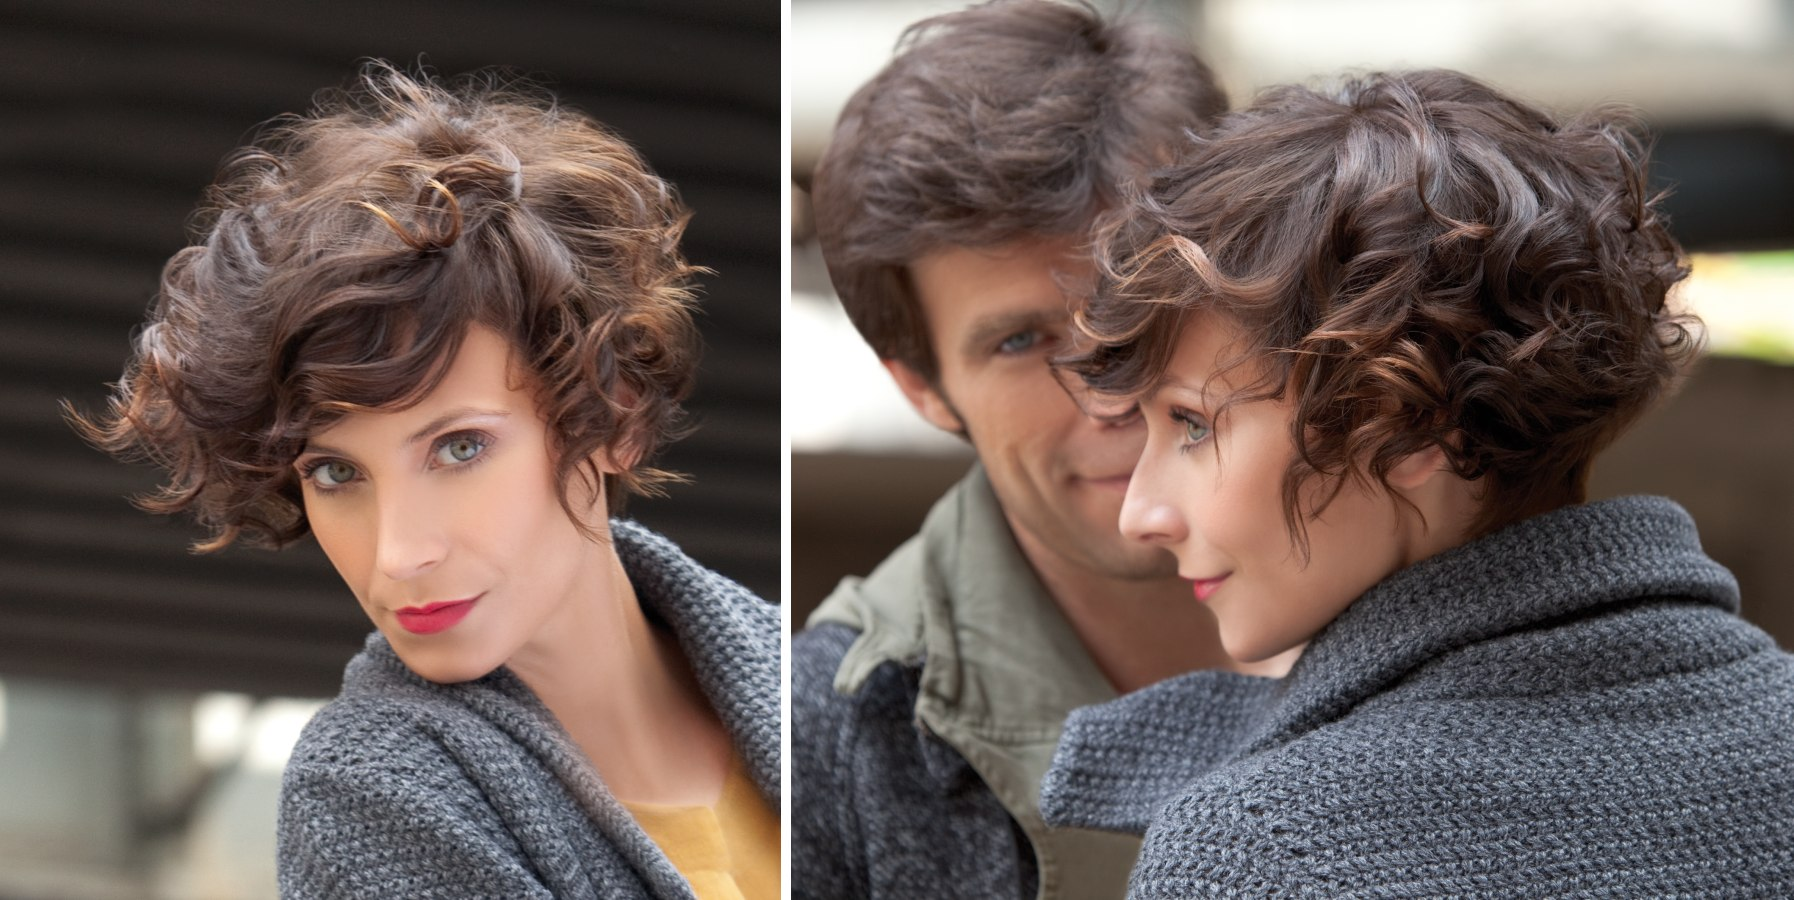 Short Hairstyle With Trapeze Shaped Curls And A Graduated Back - Short hairstyles with curls